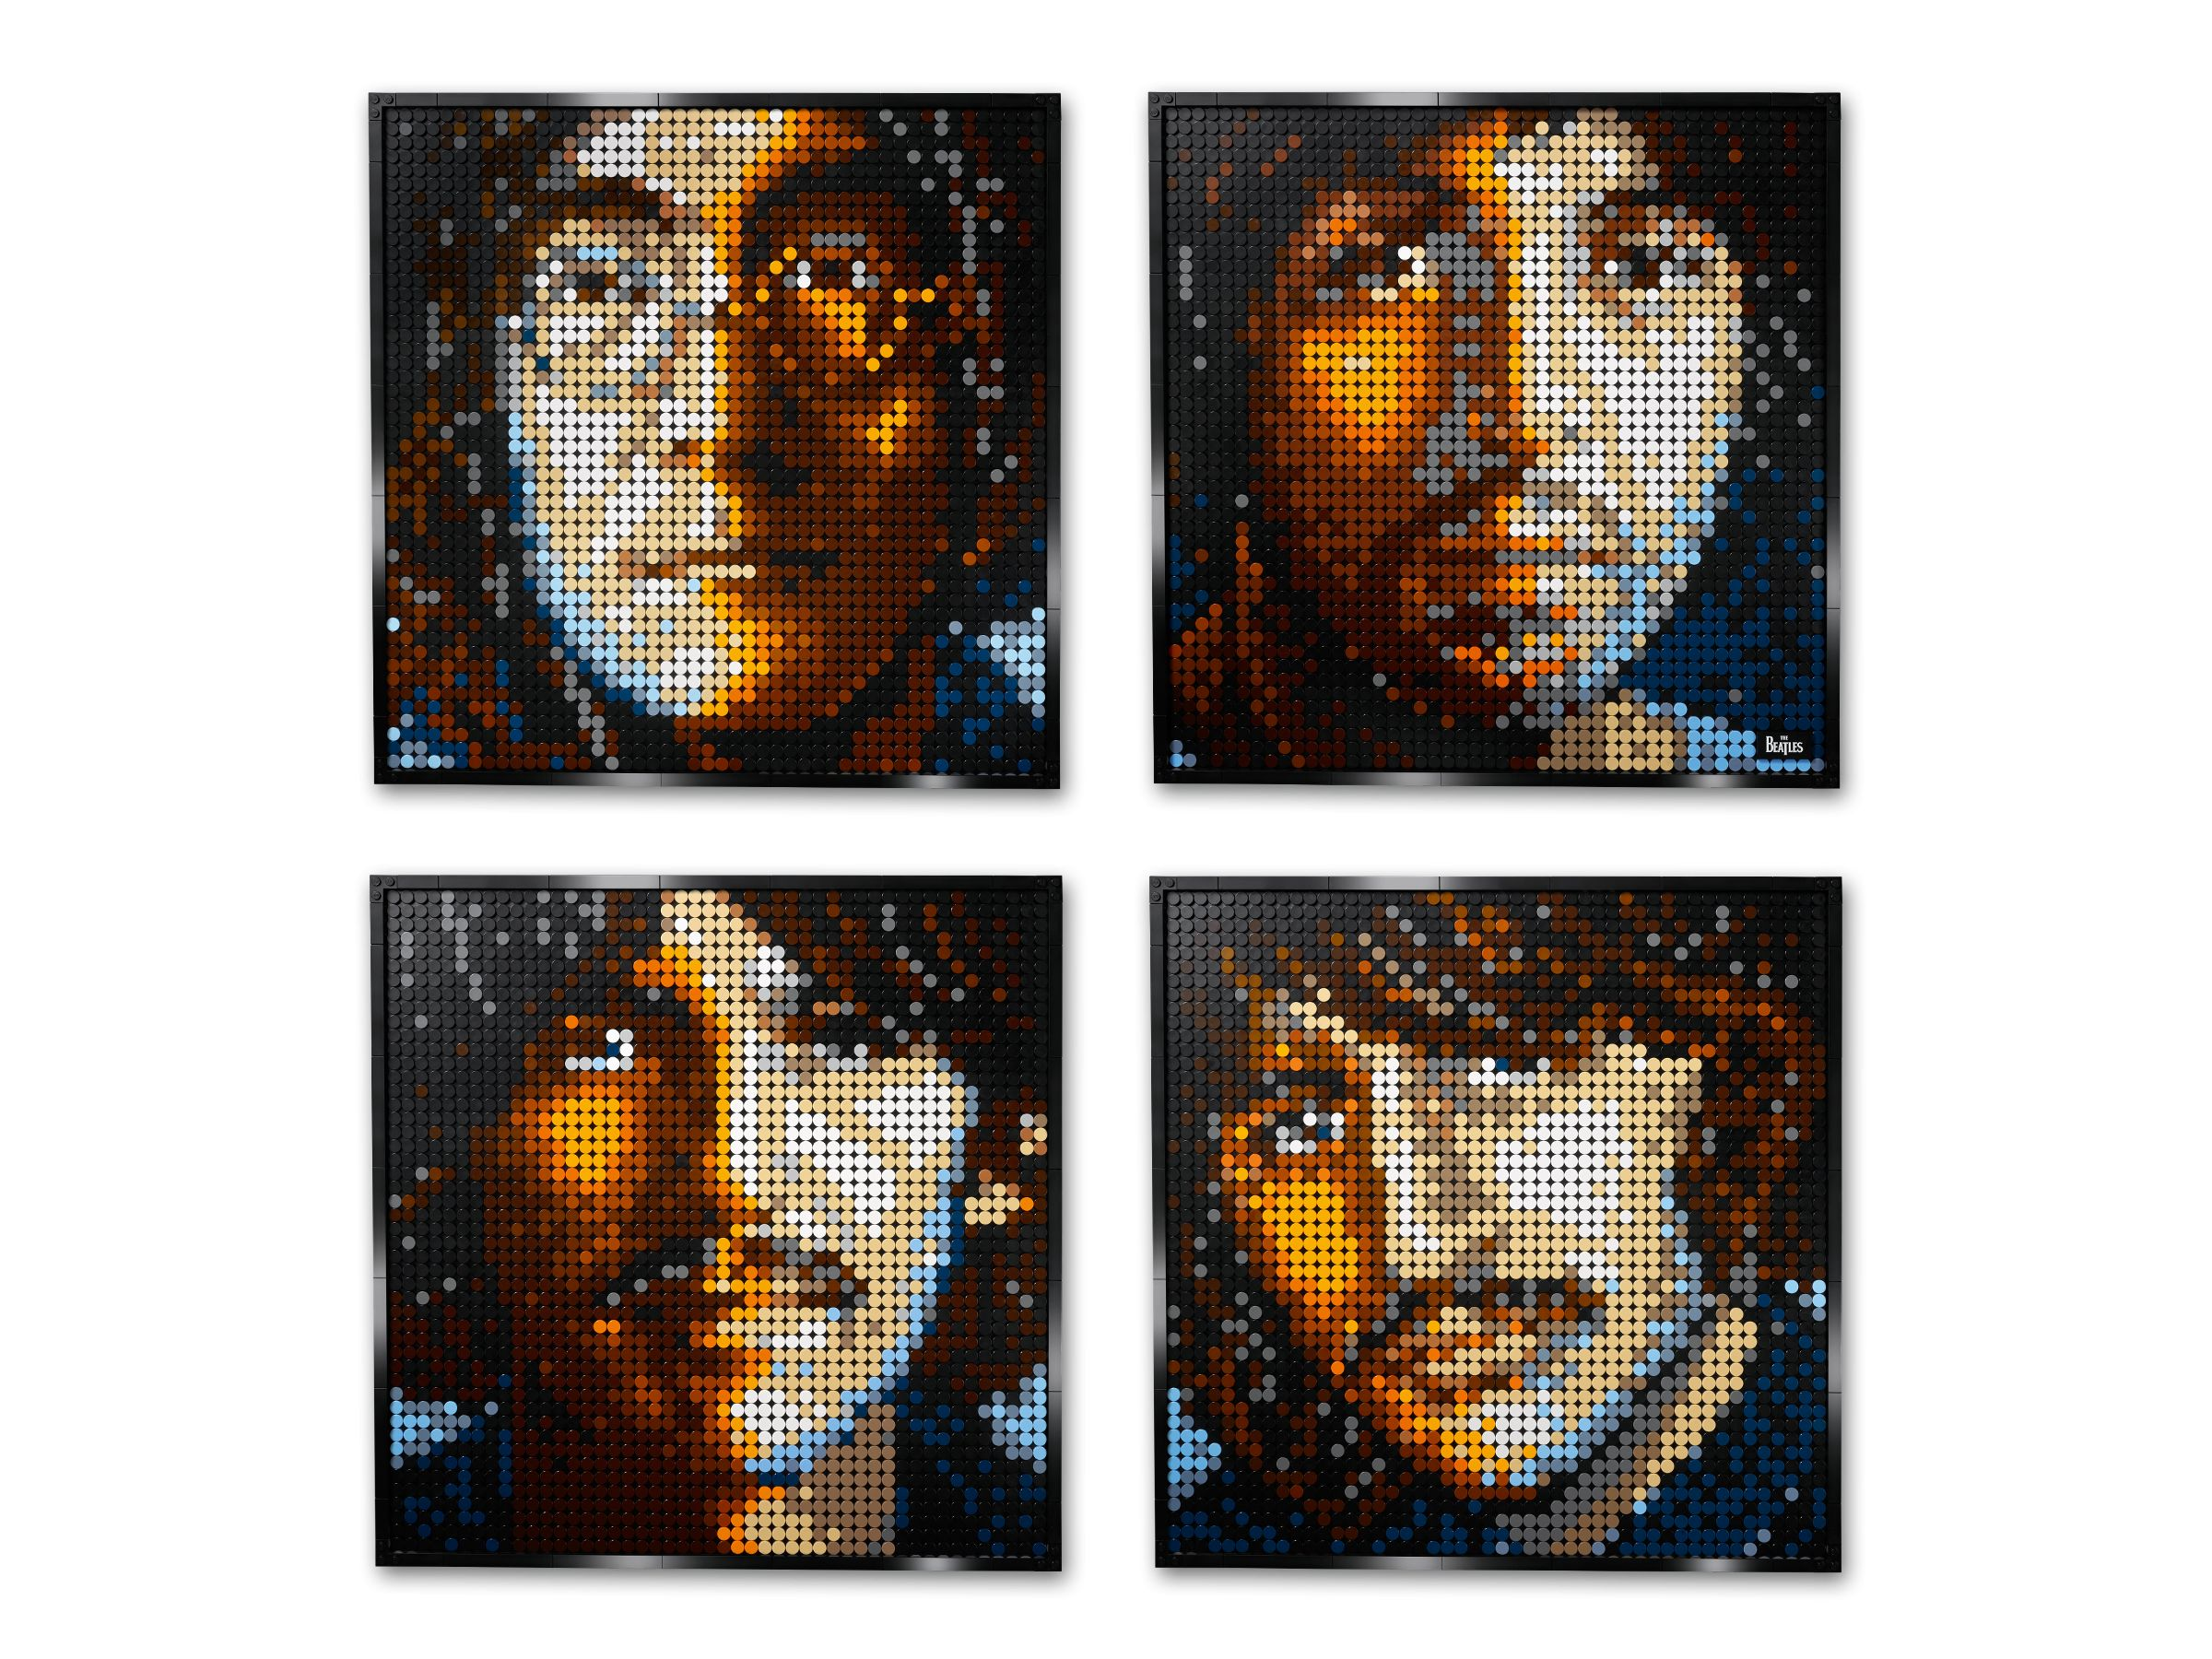 LEGO Art 31198 The Beatles LEGO_31198_alt16.jpg